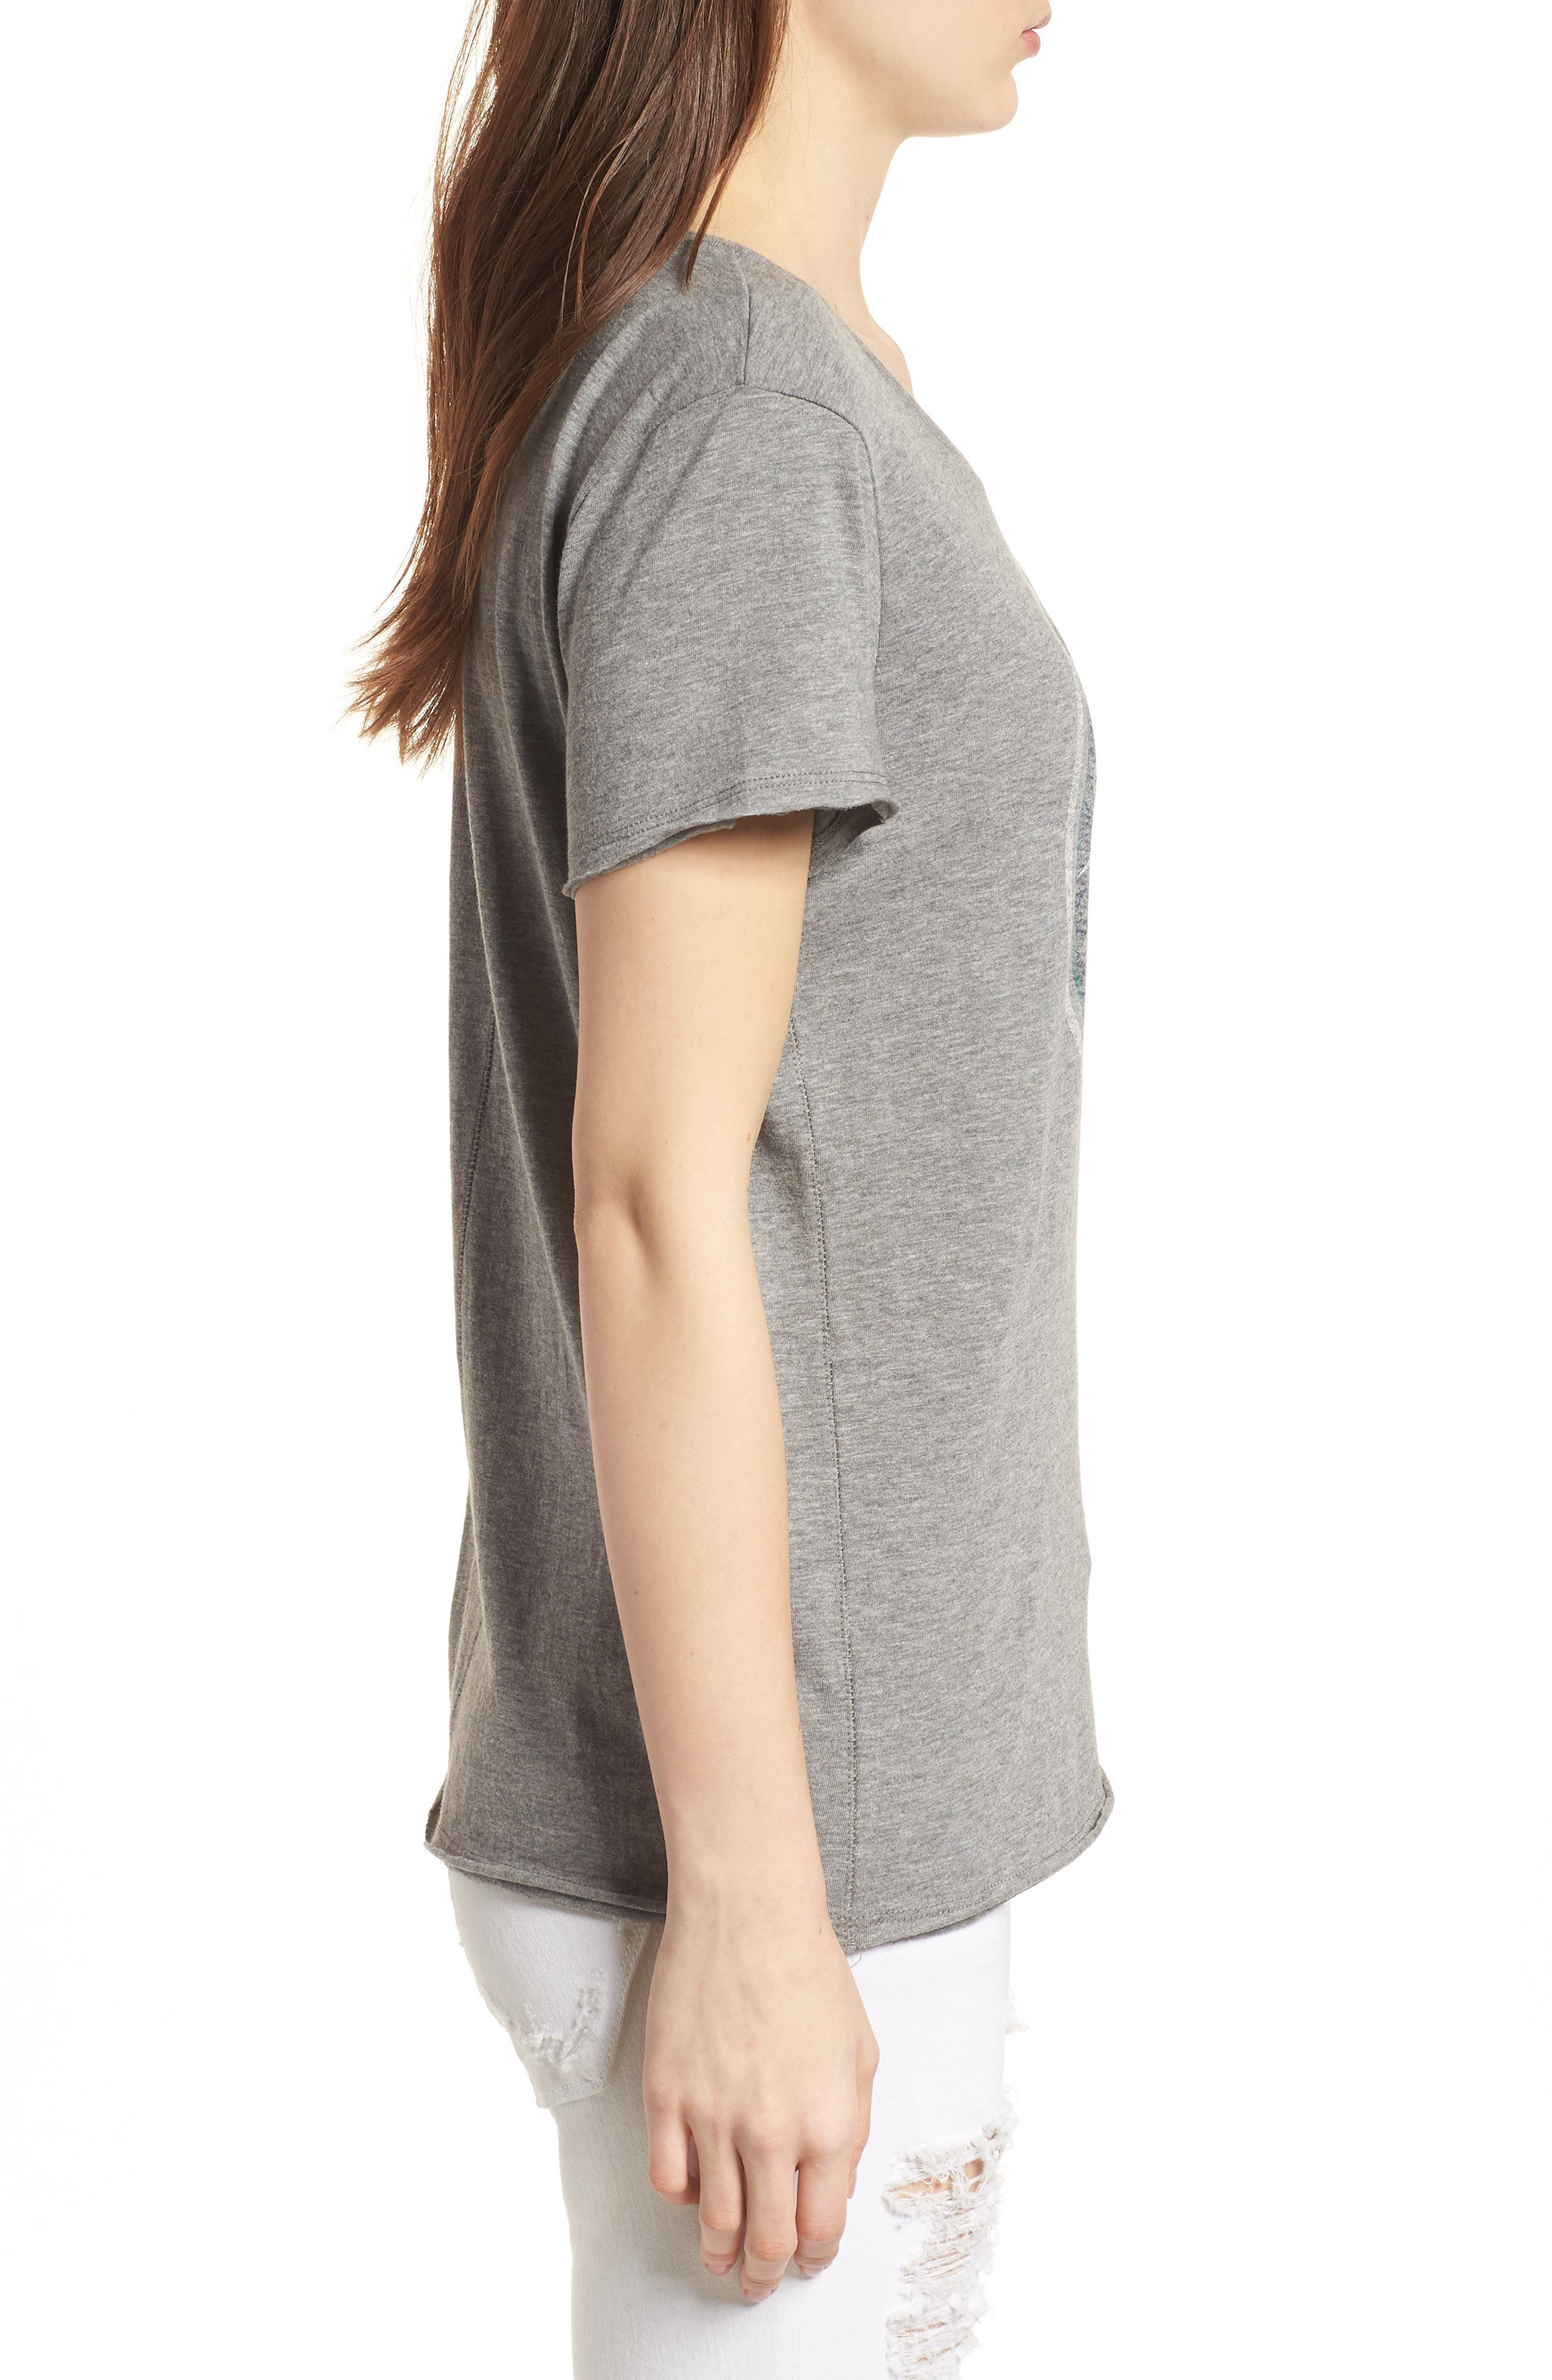 Seattle Mariners Fader Letter Tee,                             Alternate thumbnail 3, color,                             Slate Grey